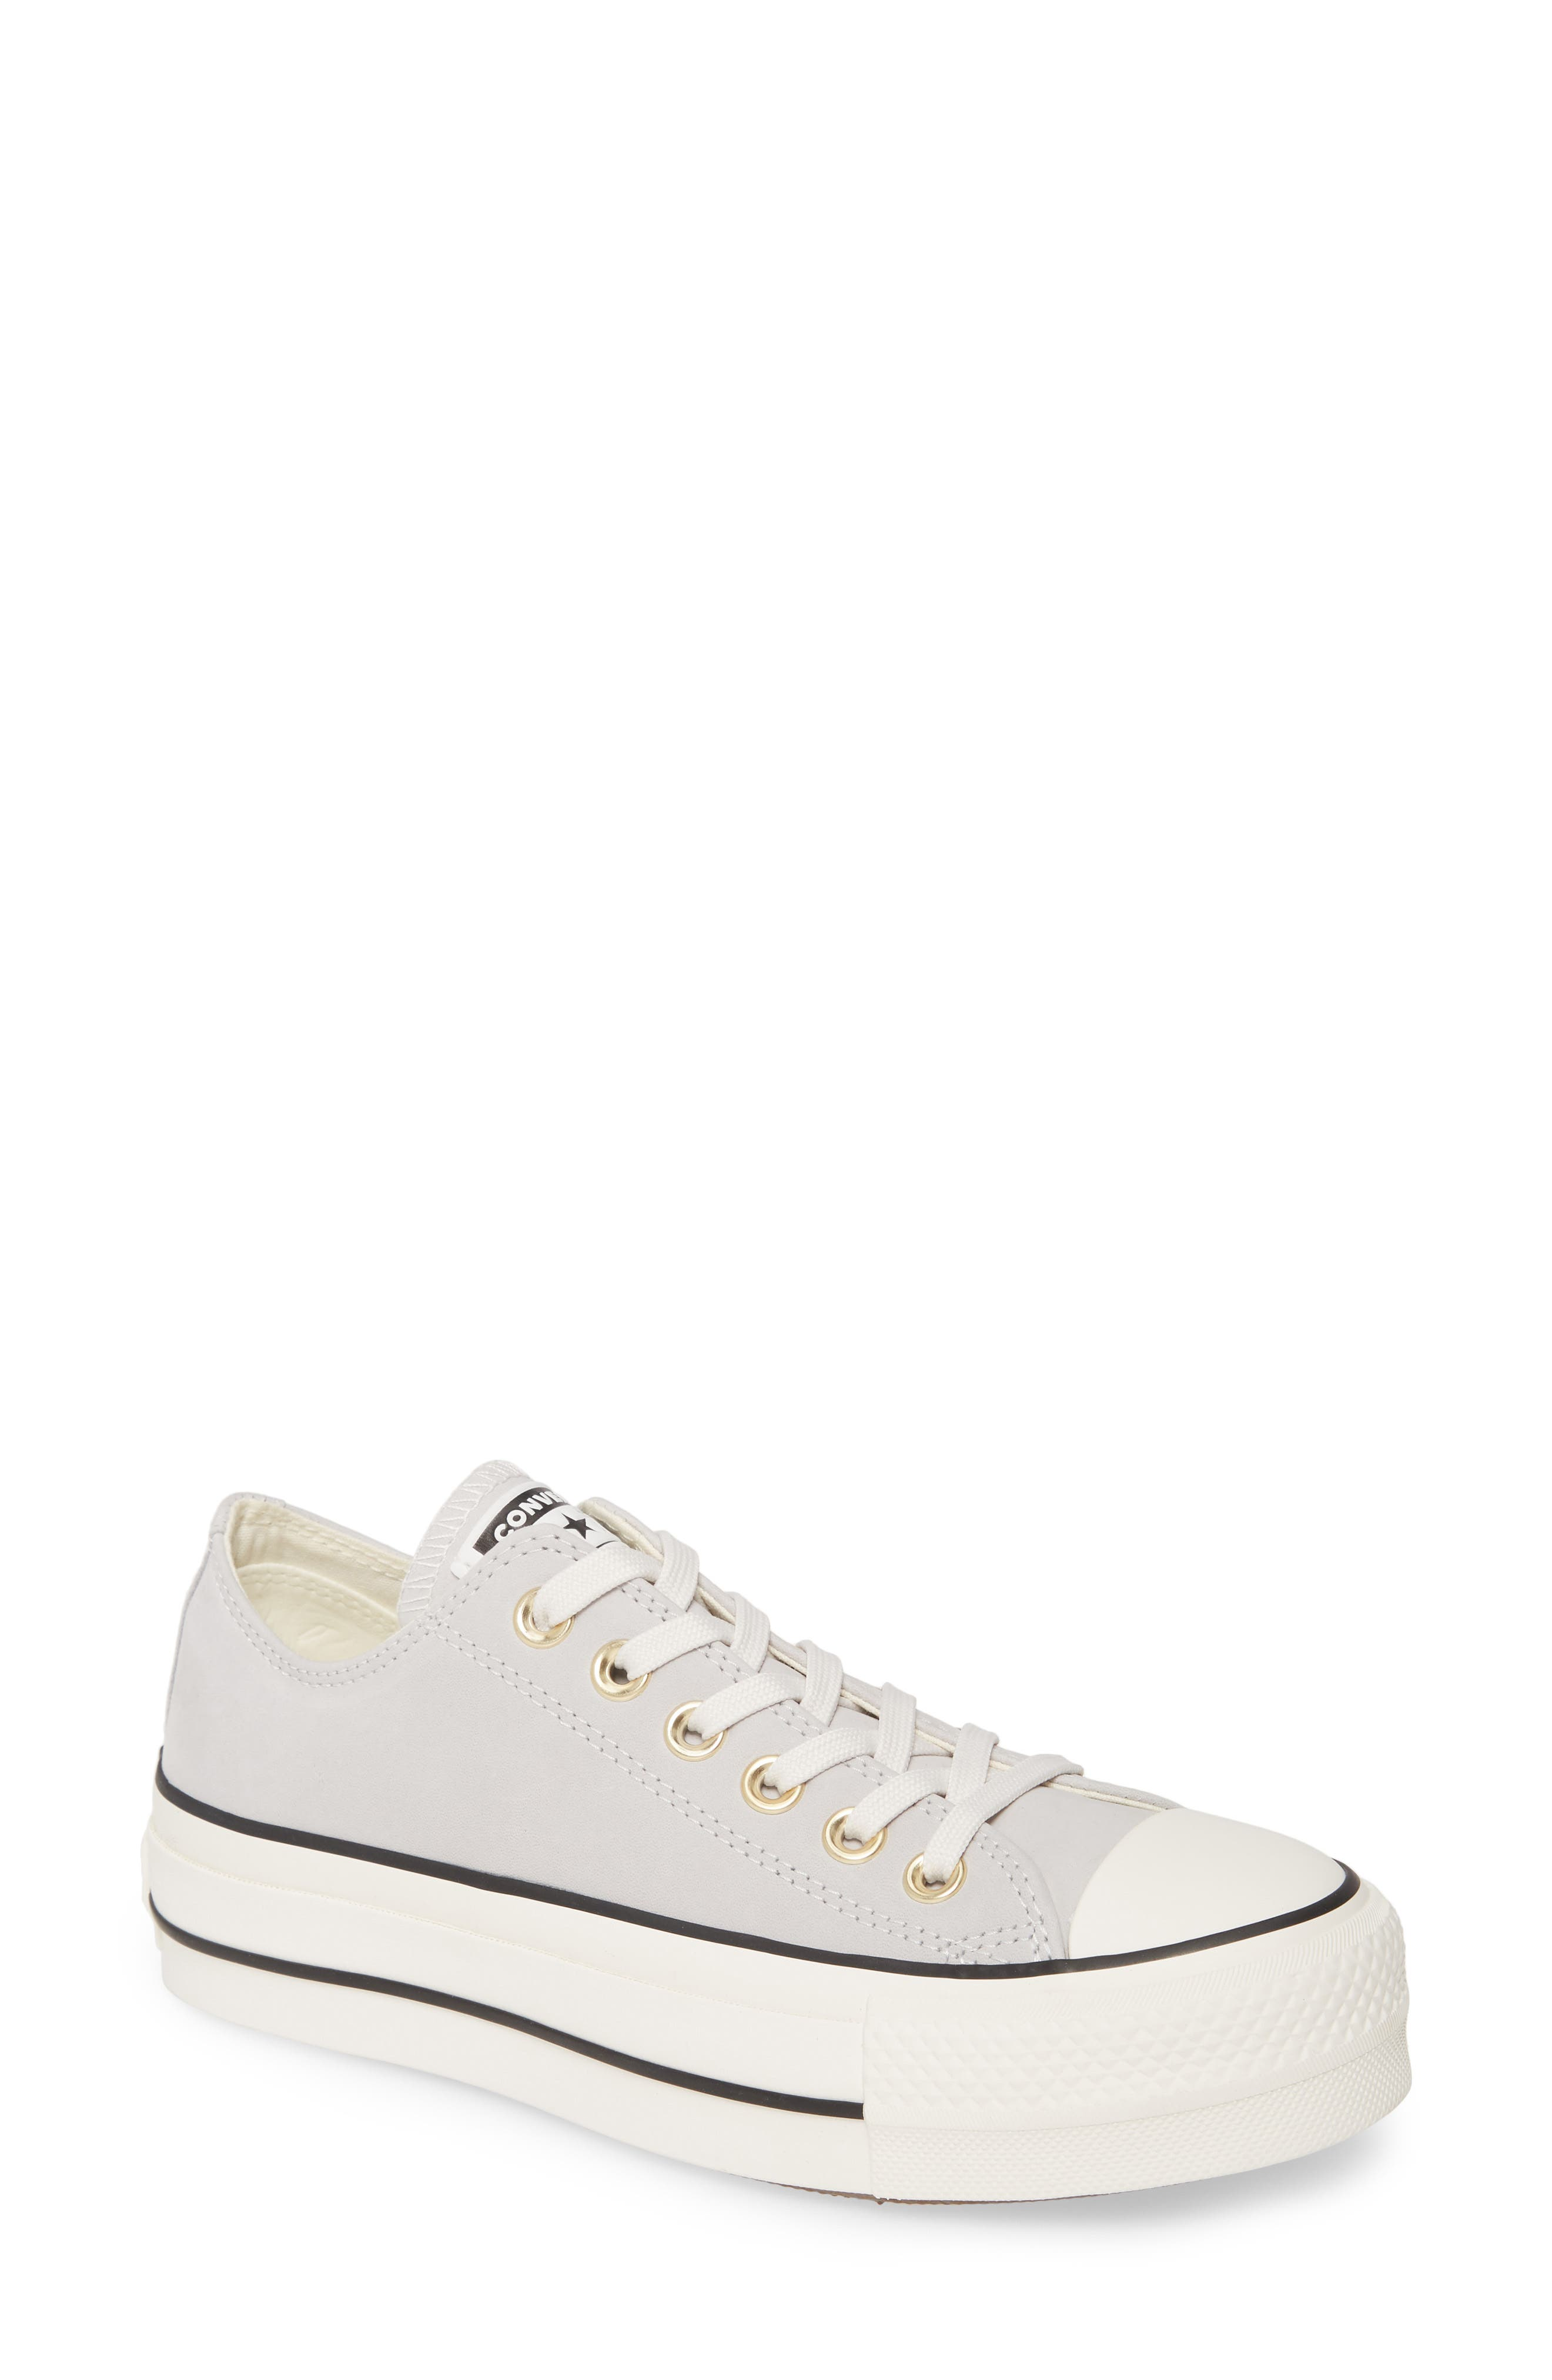 Women's Converse Sneakers & Running Shoes | Nordstrom